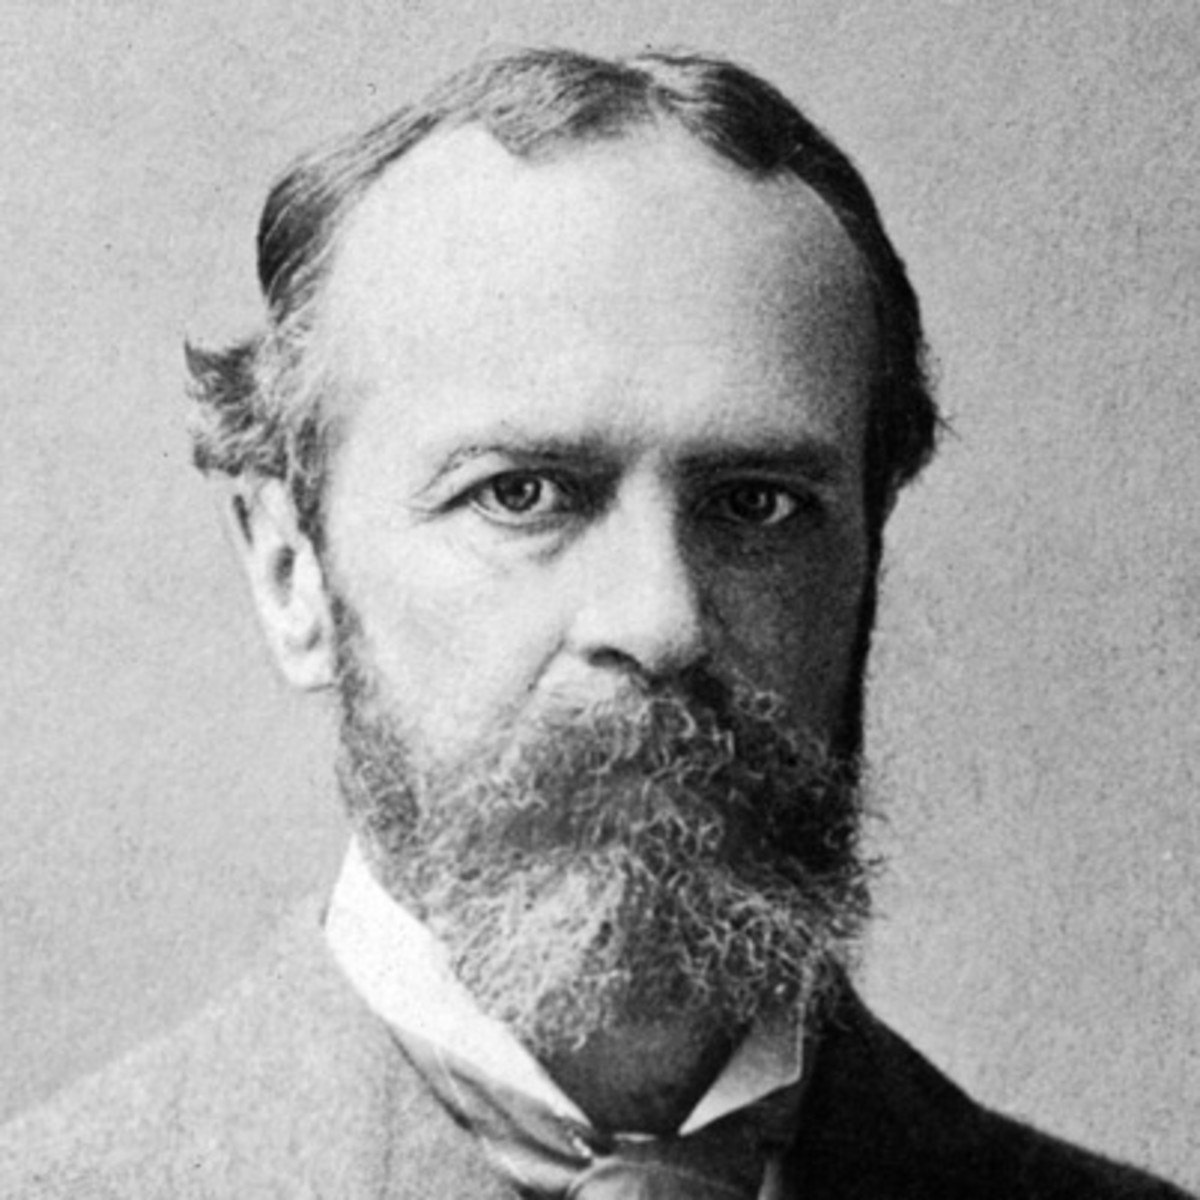 William James - Psychology, Pragmatism & Books - Biography